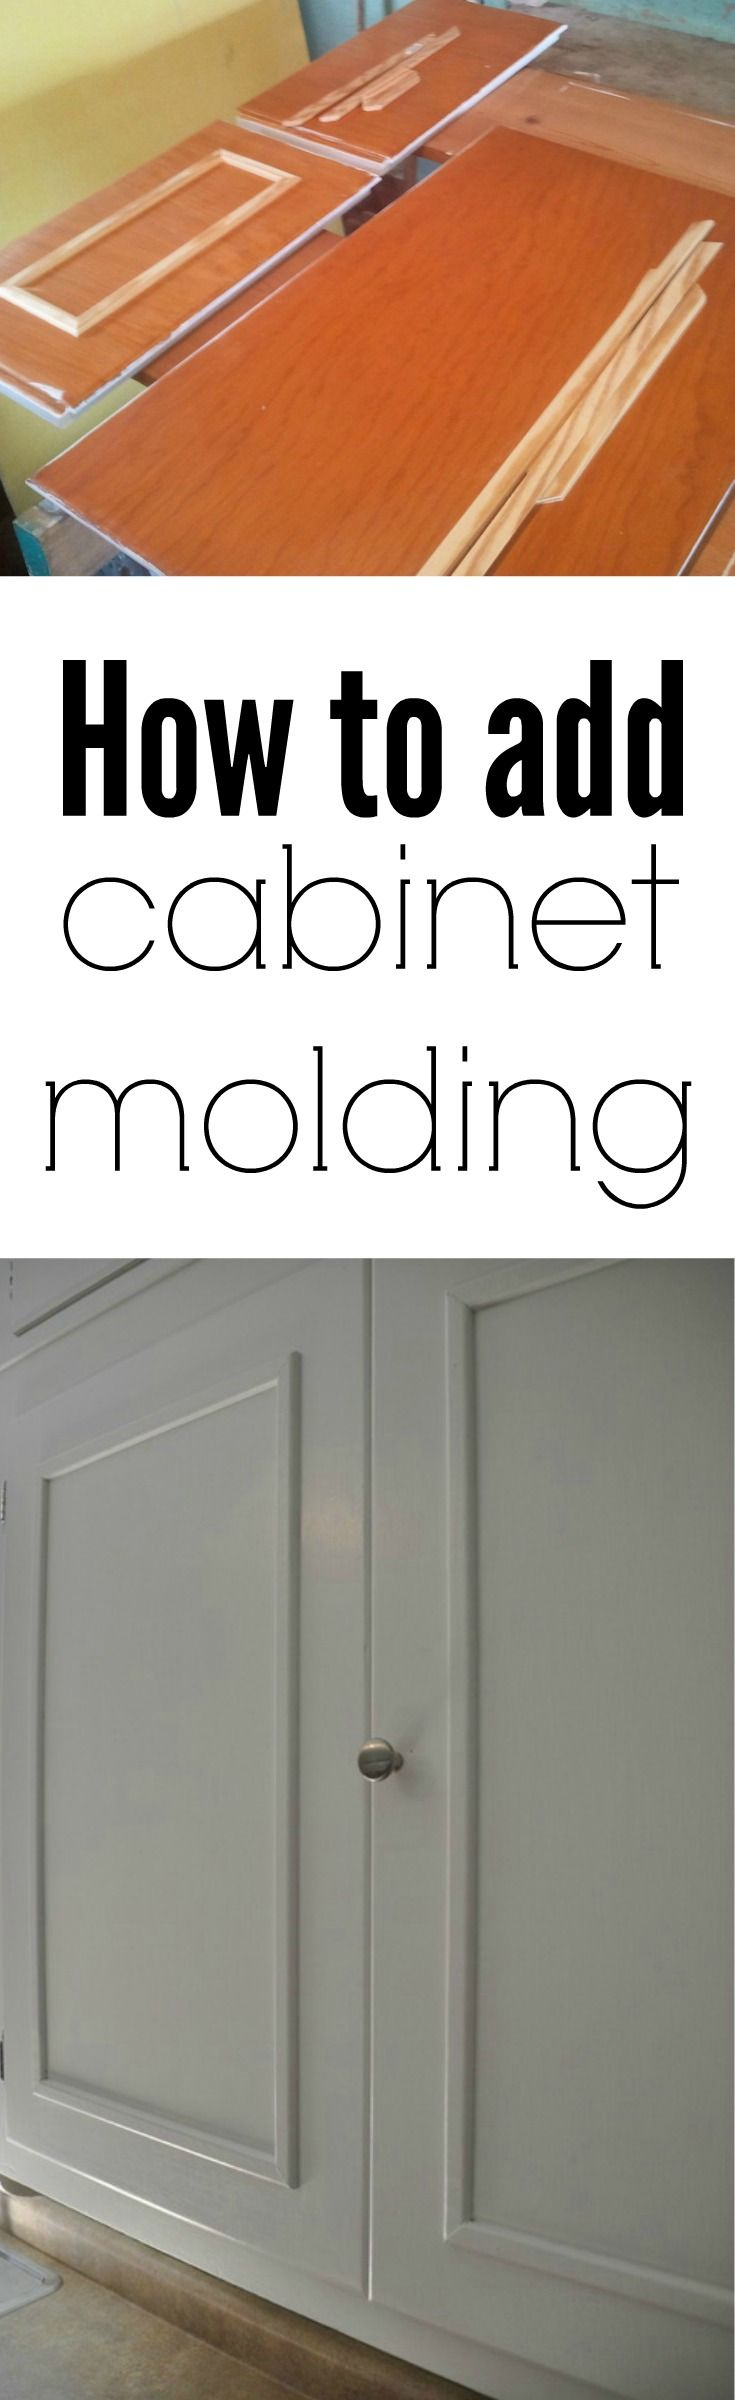 how to add cabinet molding moldings and kitchens how to add cabinet molding